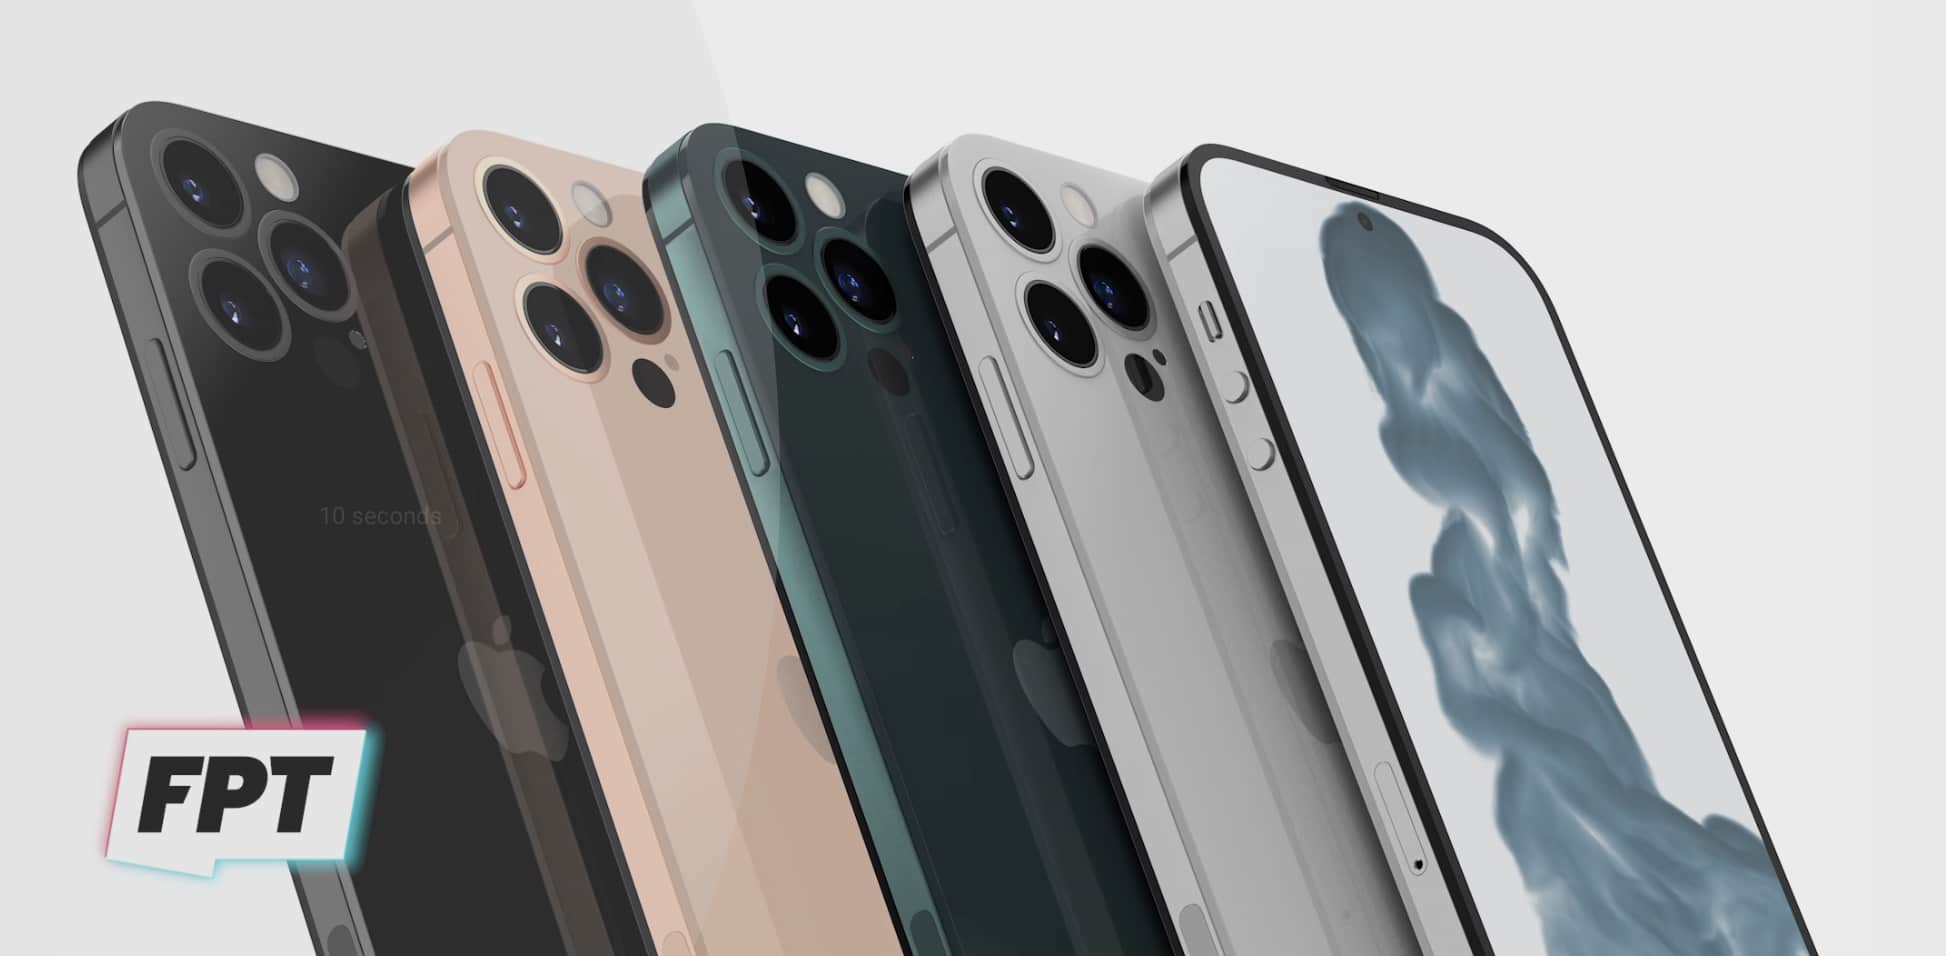 iPhone 14 leak: Some of the color options that may or may not appear